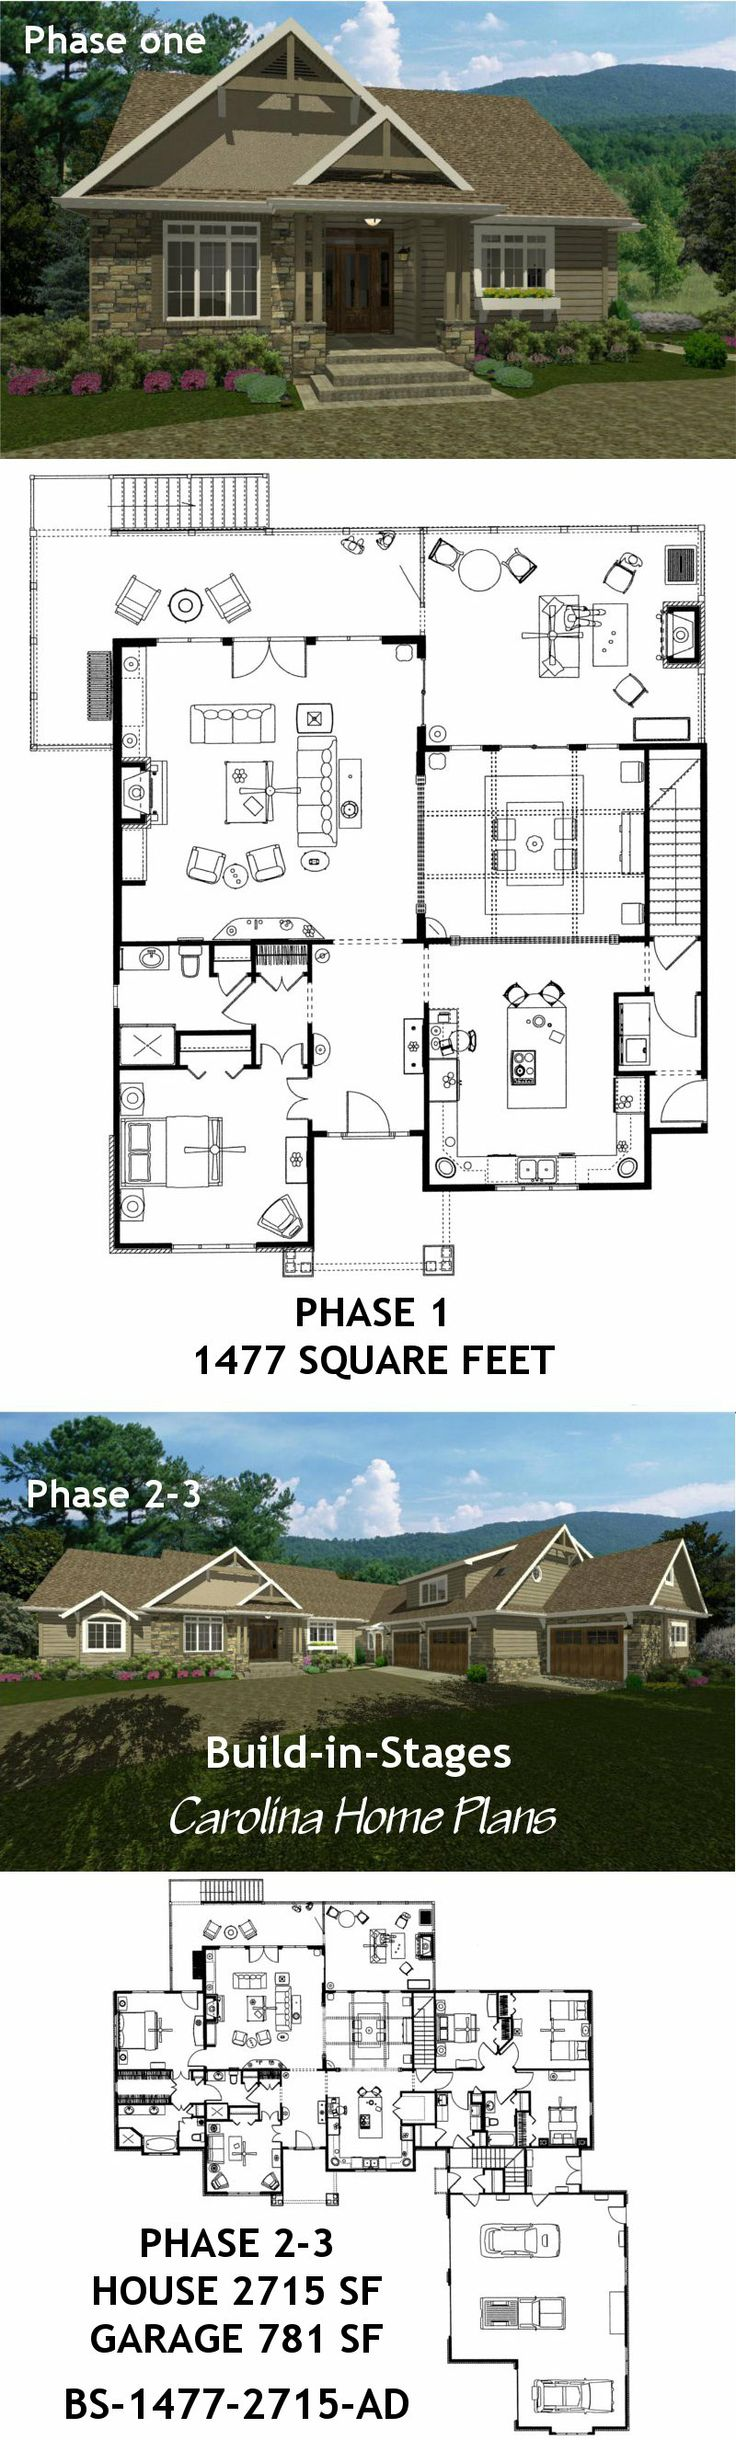 simple 3 bedroom house plans%0A images of expandable craftsman  flexible buildinstages house plan easily  choose a buildinstages expandable open floor plan homewith views